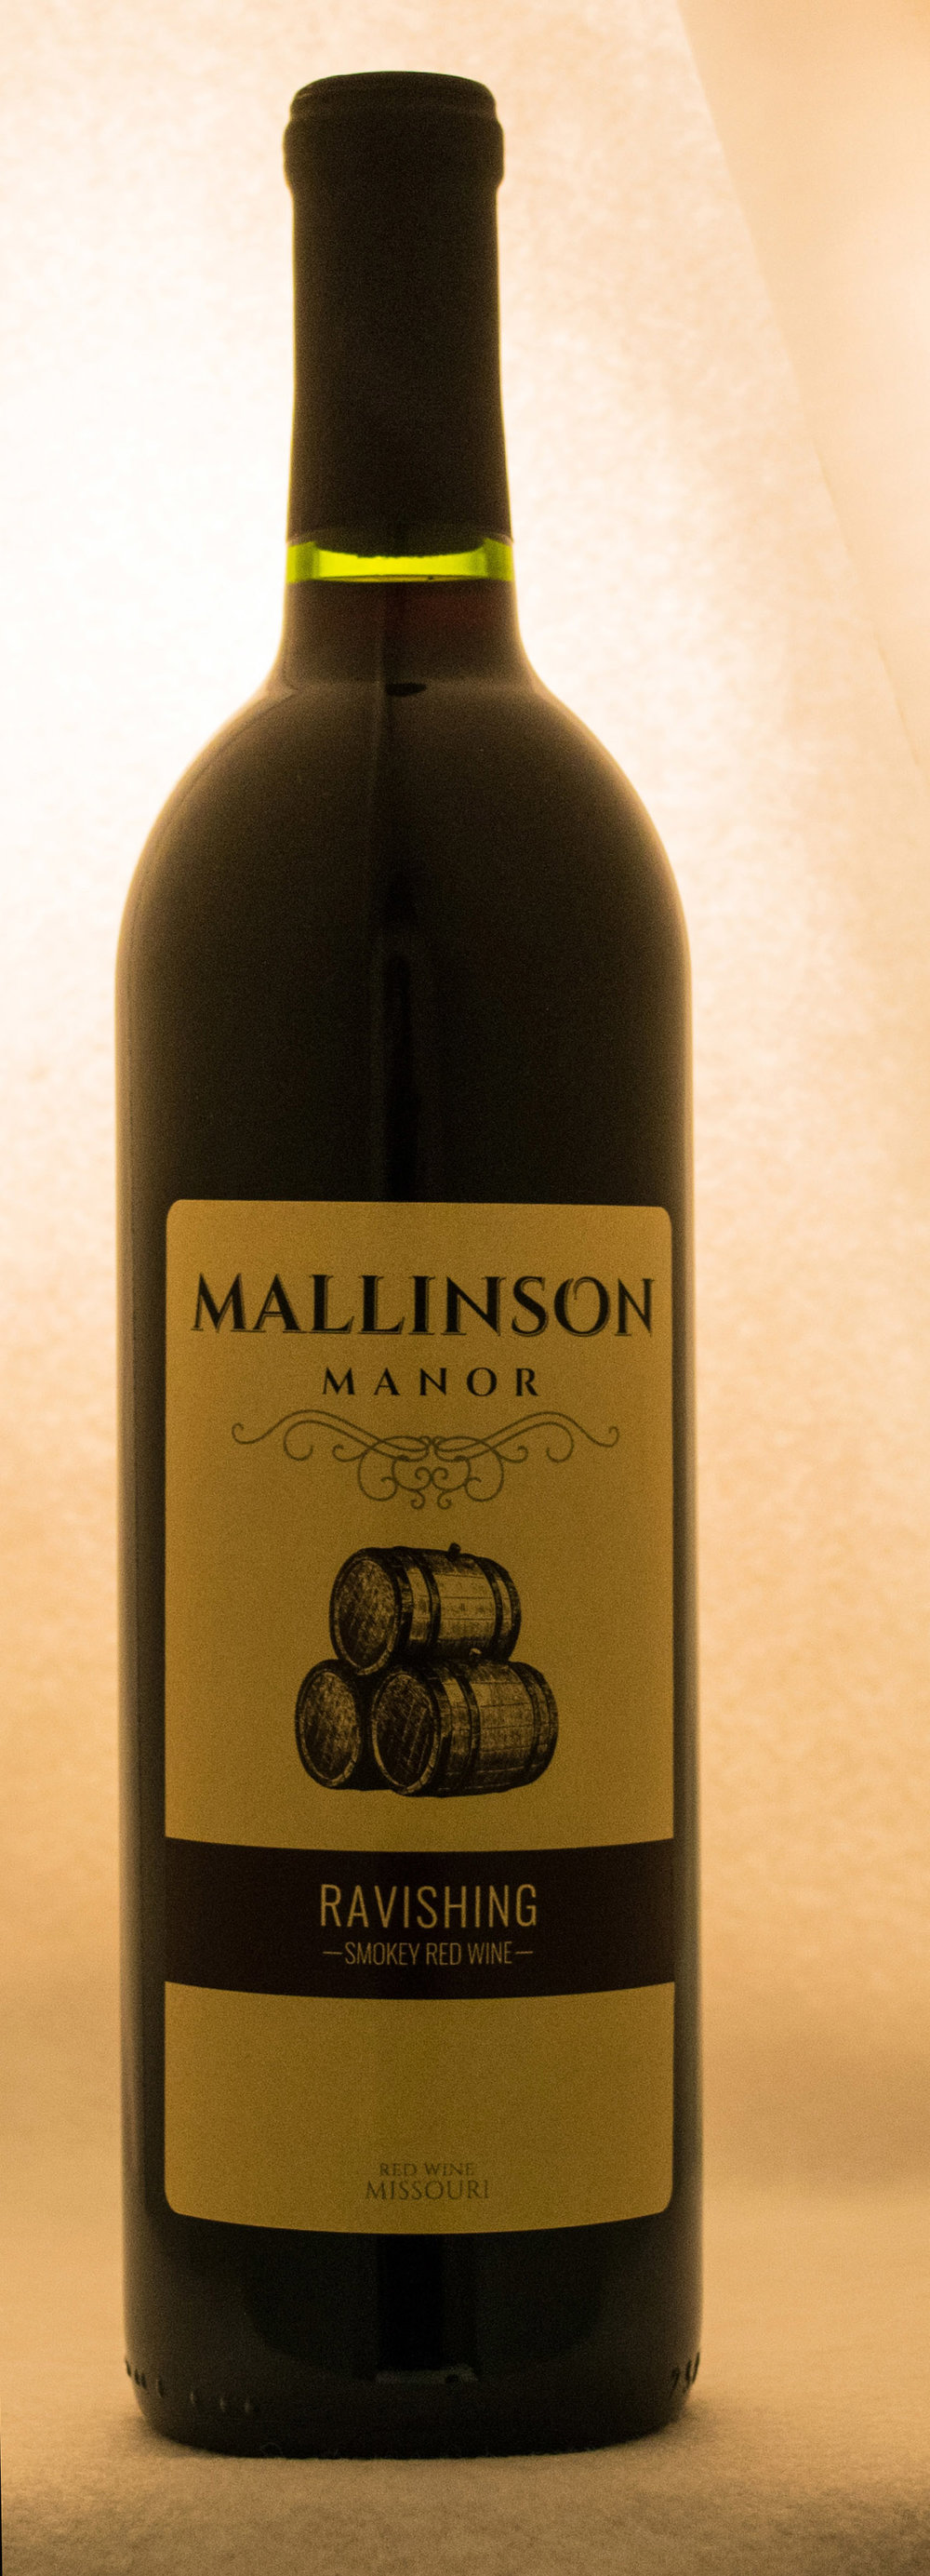 Ravishing.Smokey.Red.Wine.Mallinson.Vineyard.and.Hall.Sugar.Creek.MO.jpg